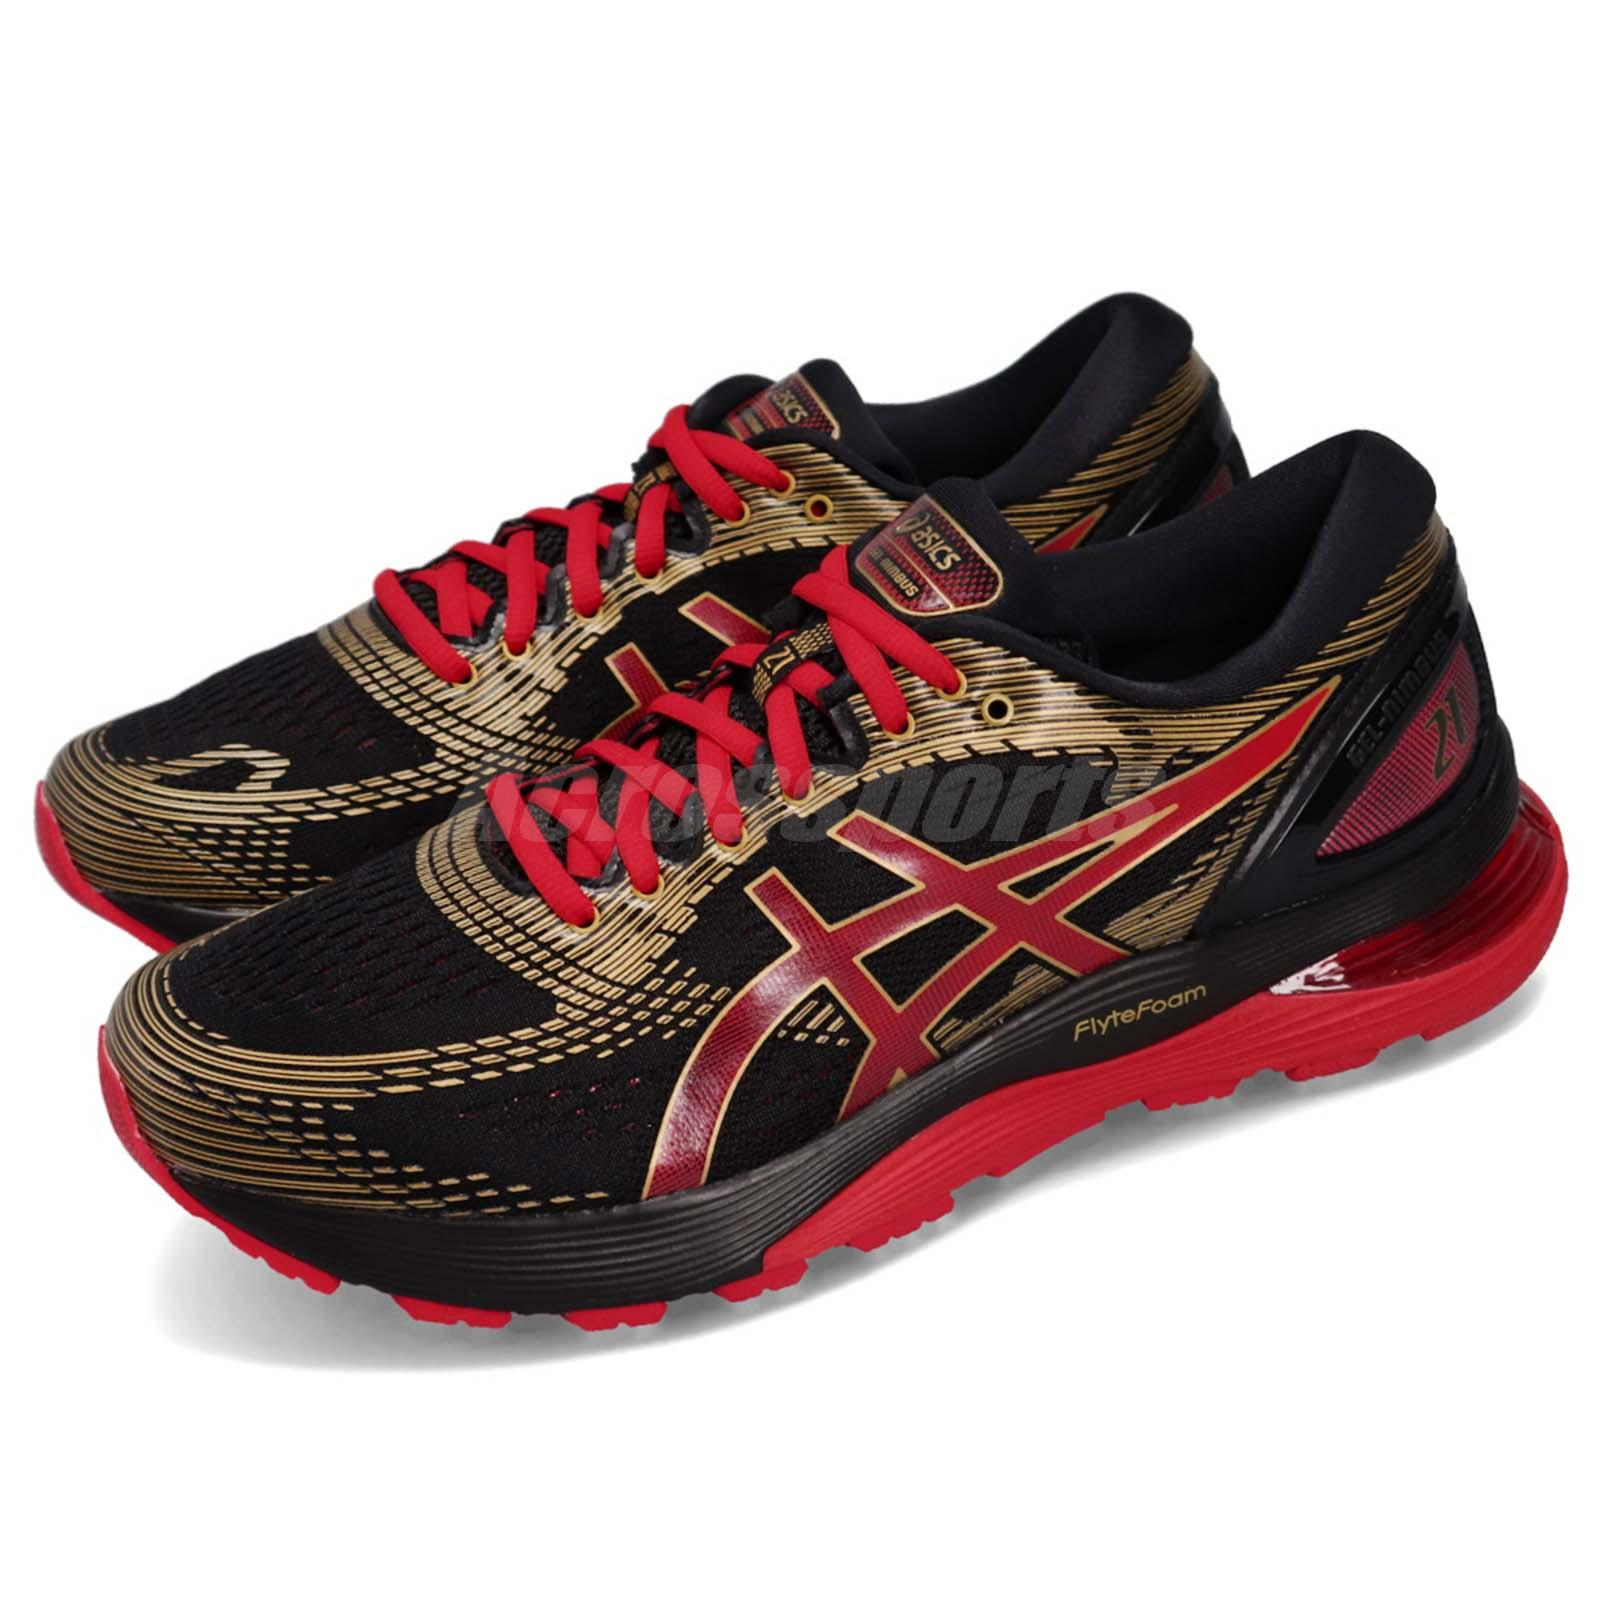 73b3c96aafa9 Details about Asics Gel-Nimbus 21 Black Classic Red Men Running Shoes  Sneakers 1011A257-001